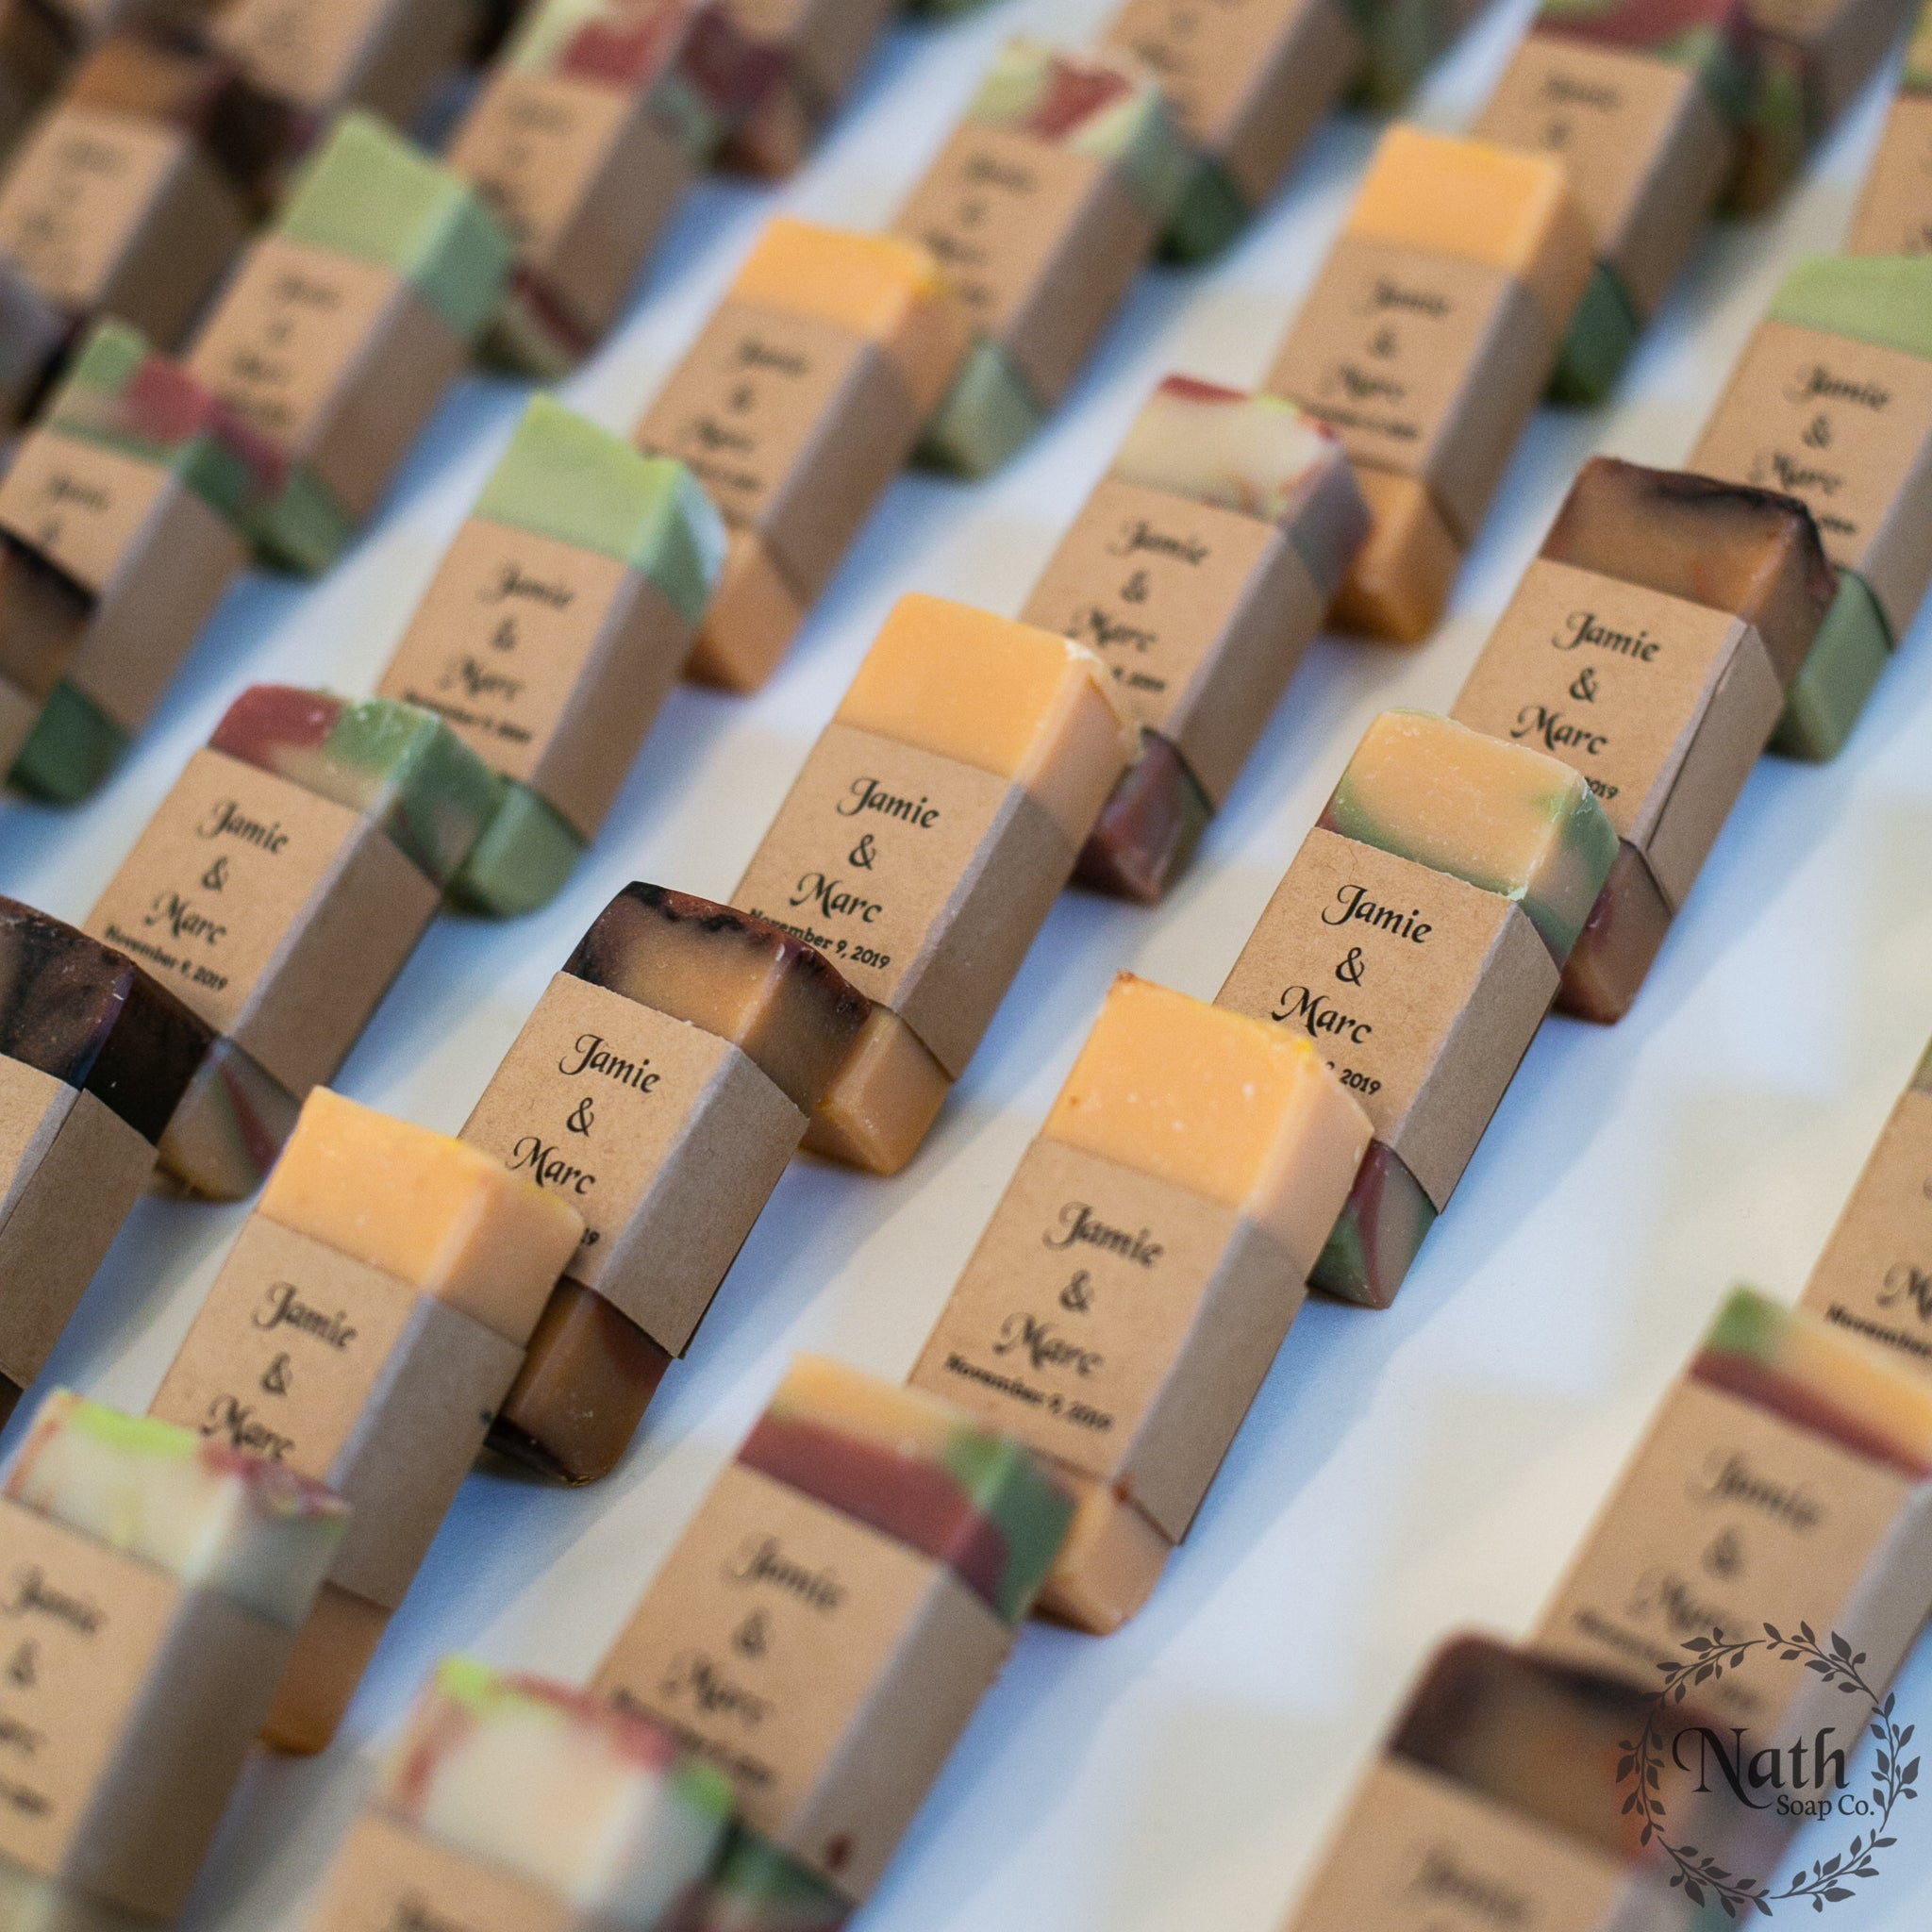 Wedding, showers, events mini artisan soap favors.